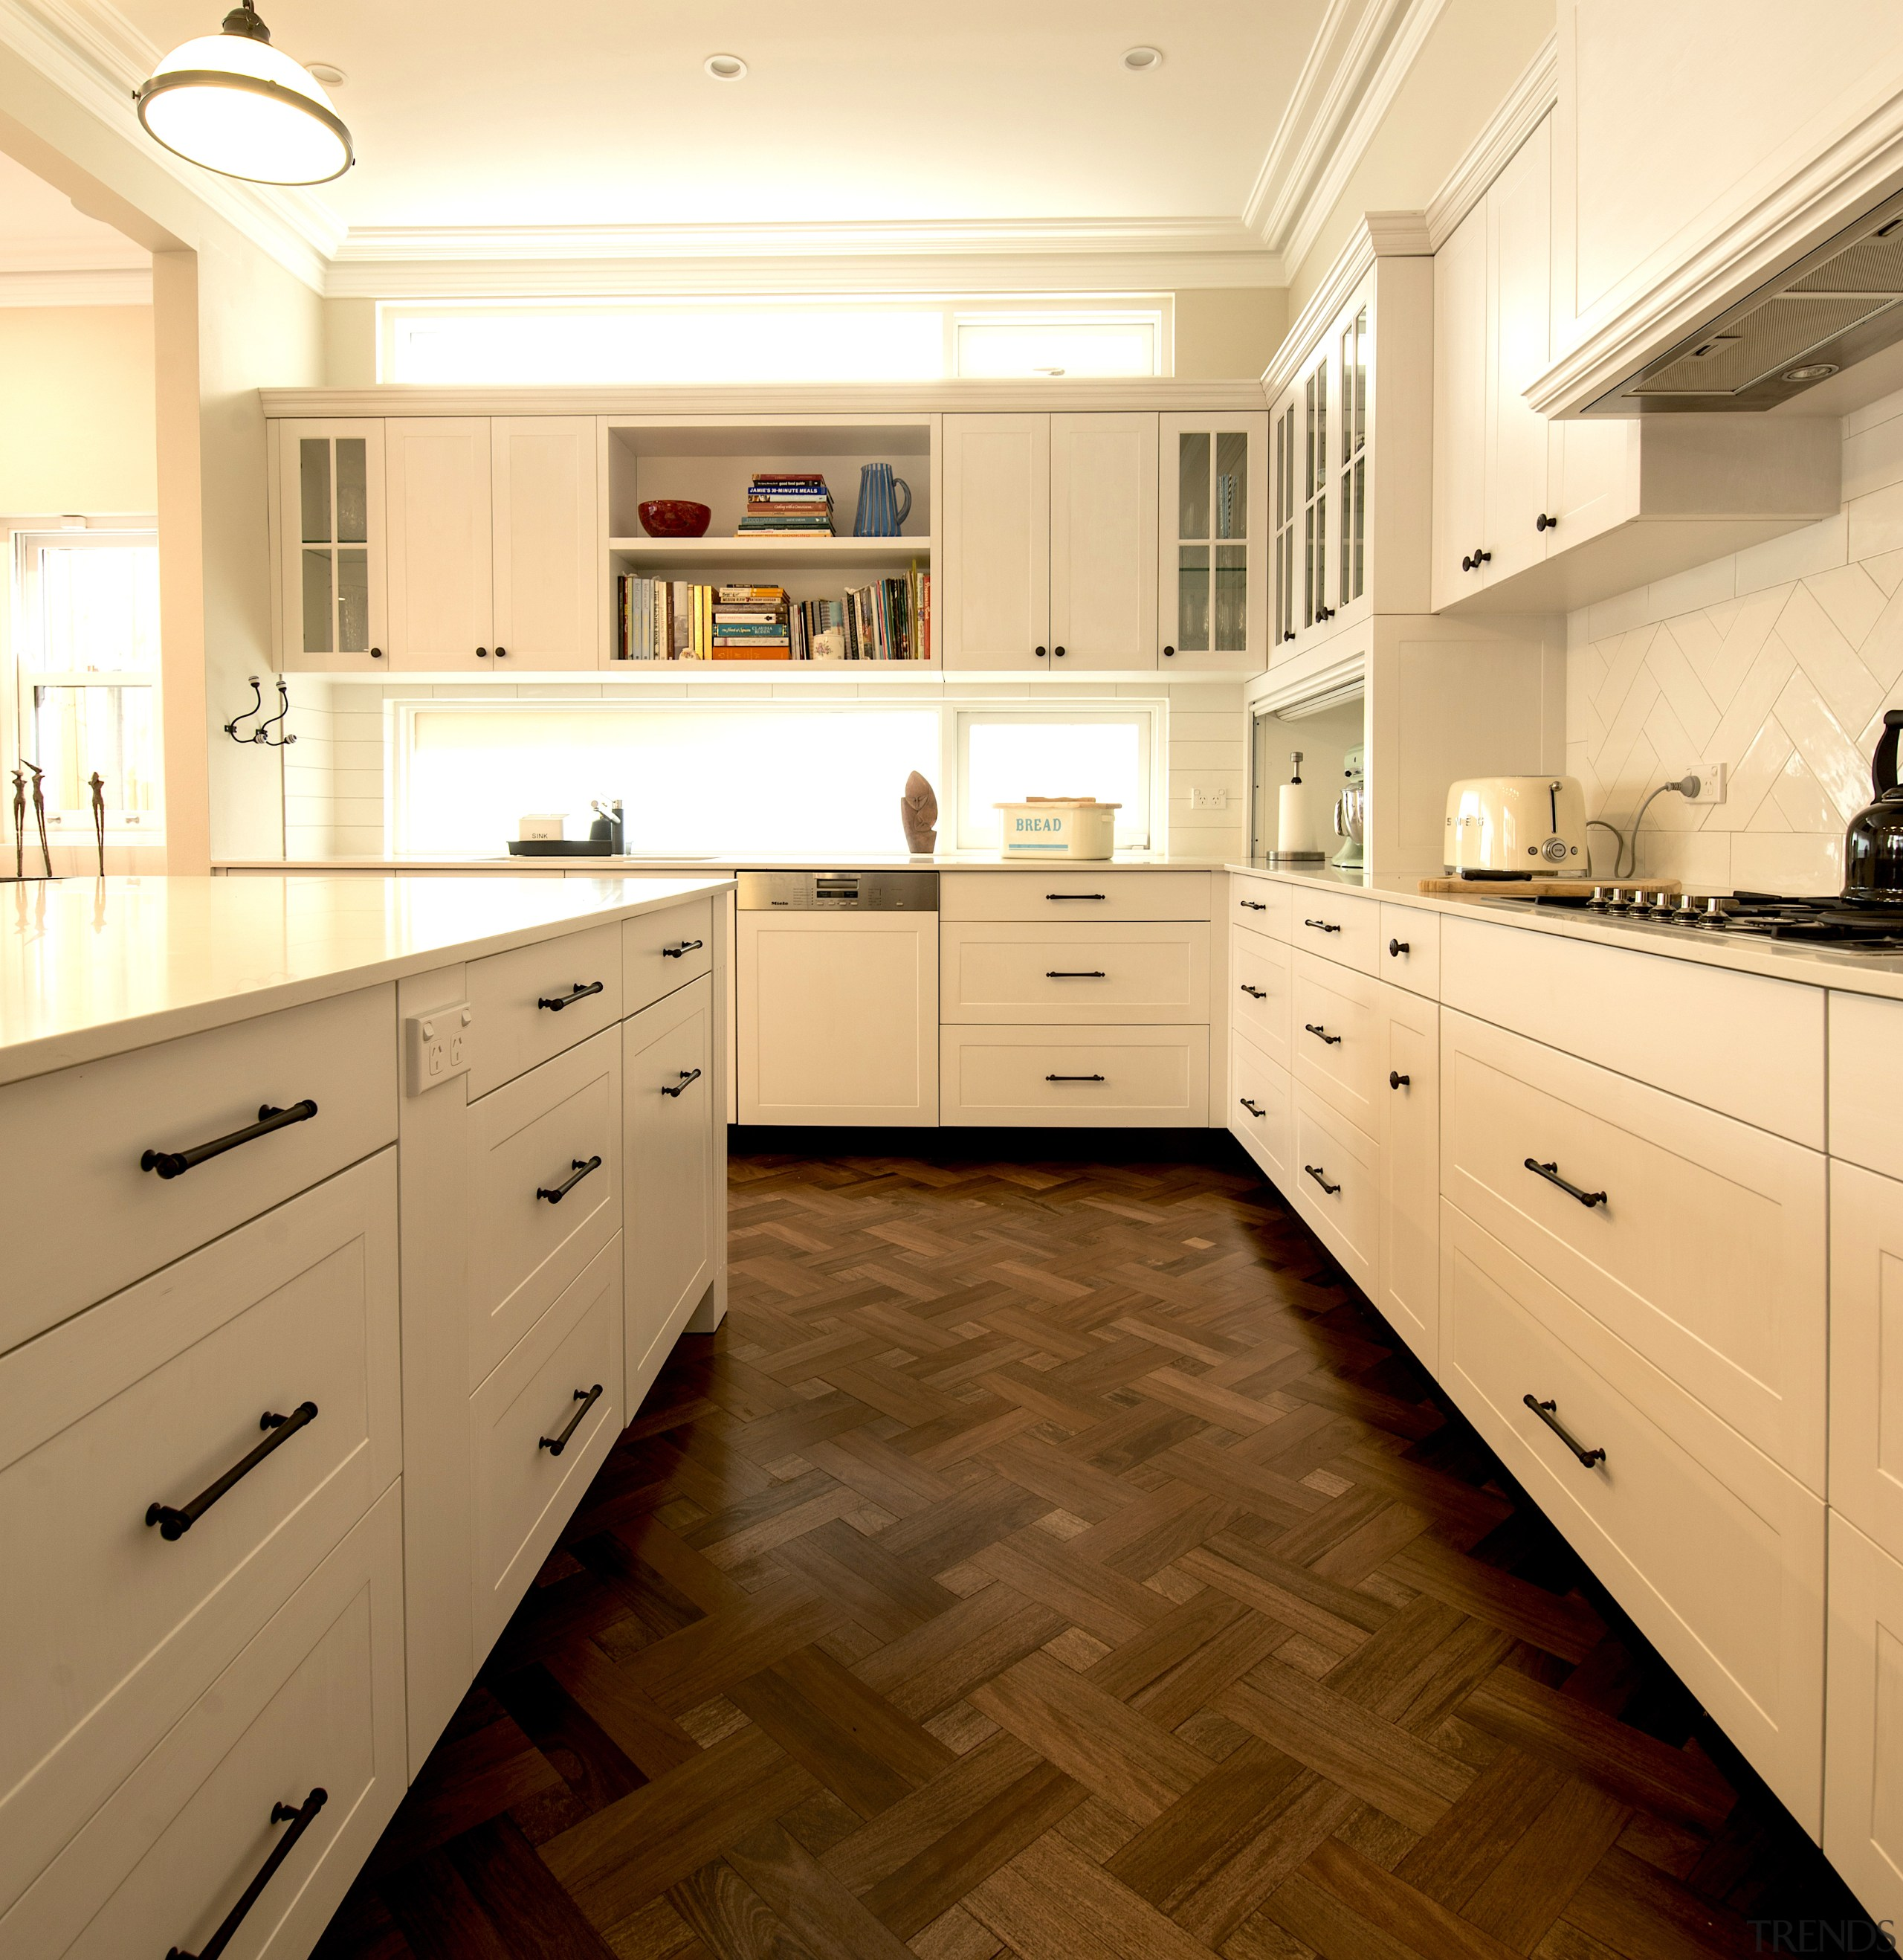 Shaker-style doors with decorative black handles are both architecture, building, cabinetry, ceiling, countertop, cupboard, drawer, floor, flooring, furniture, home, house, interior design, kitchen, lighting, material property, property, real estate, room, sink, tile, wood flooring, yellow, orange, brown